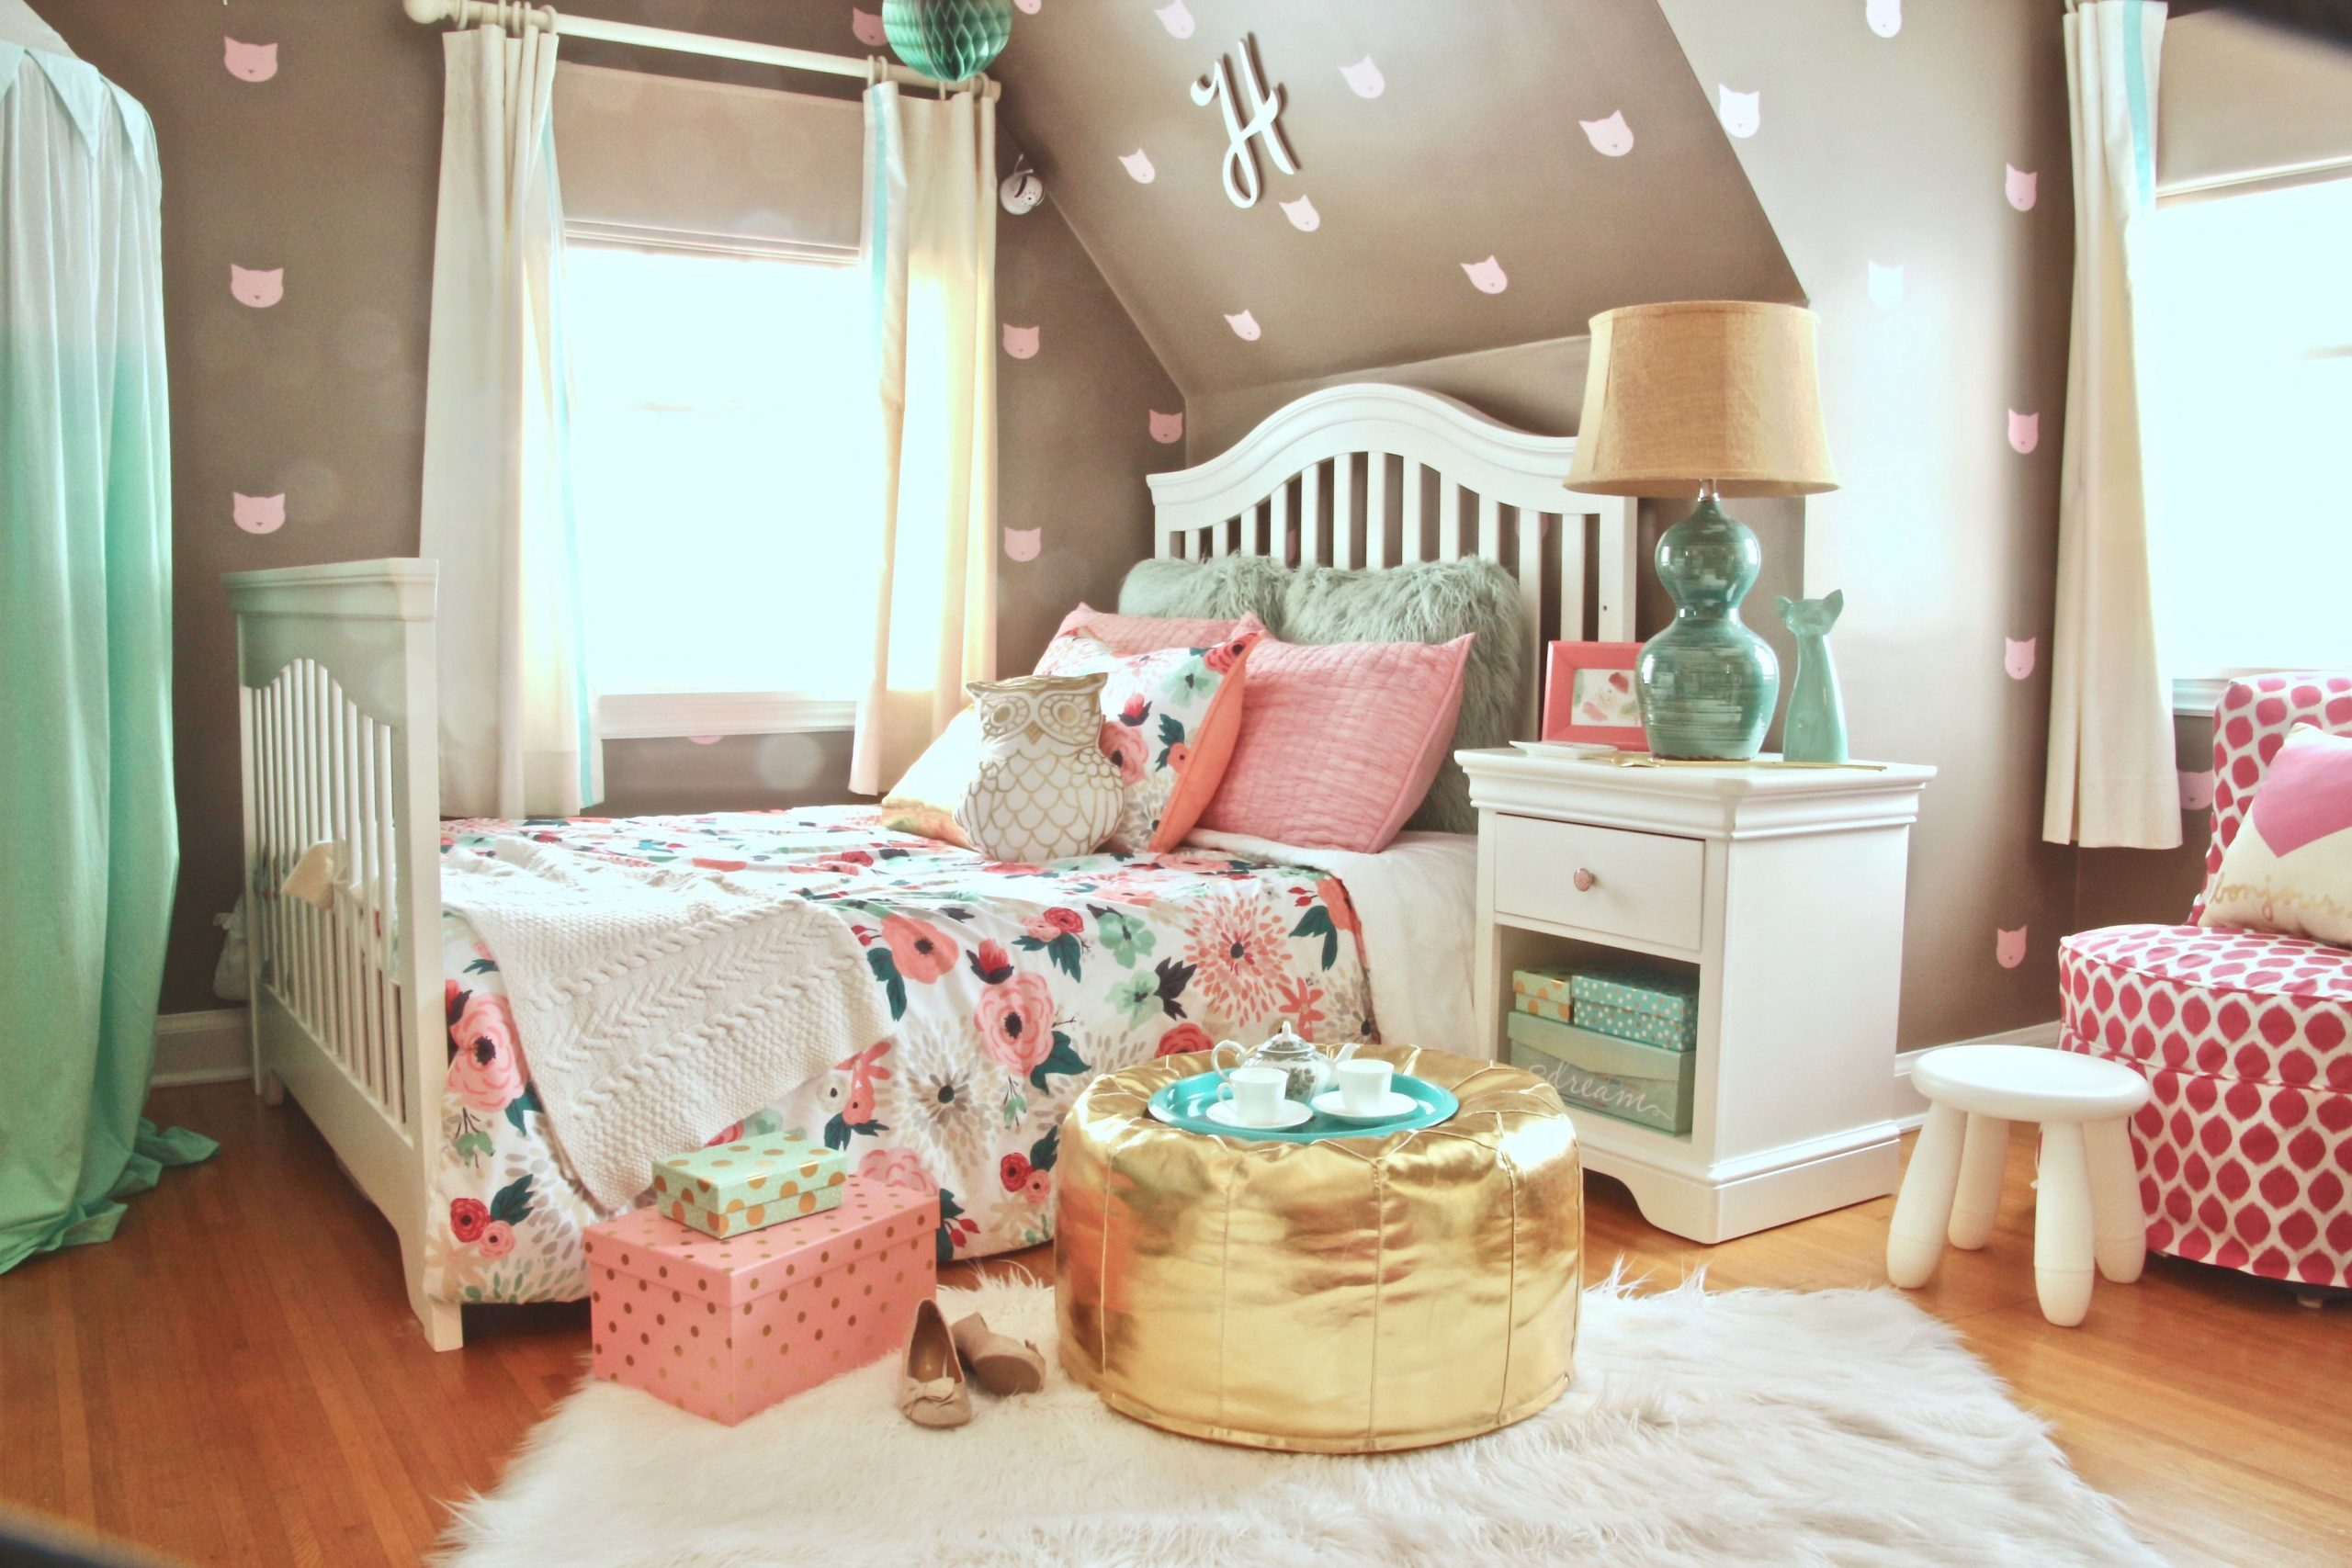 A Little Girl's Dream Bedroom: Pink And Turquoise Meet with regard to Beautiful Taupe Bedroom Decorating Ideas